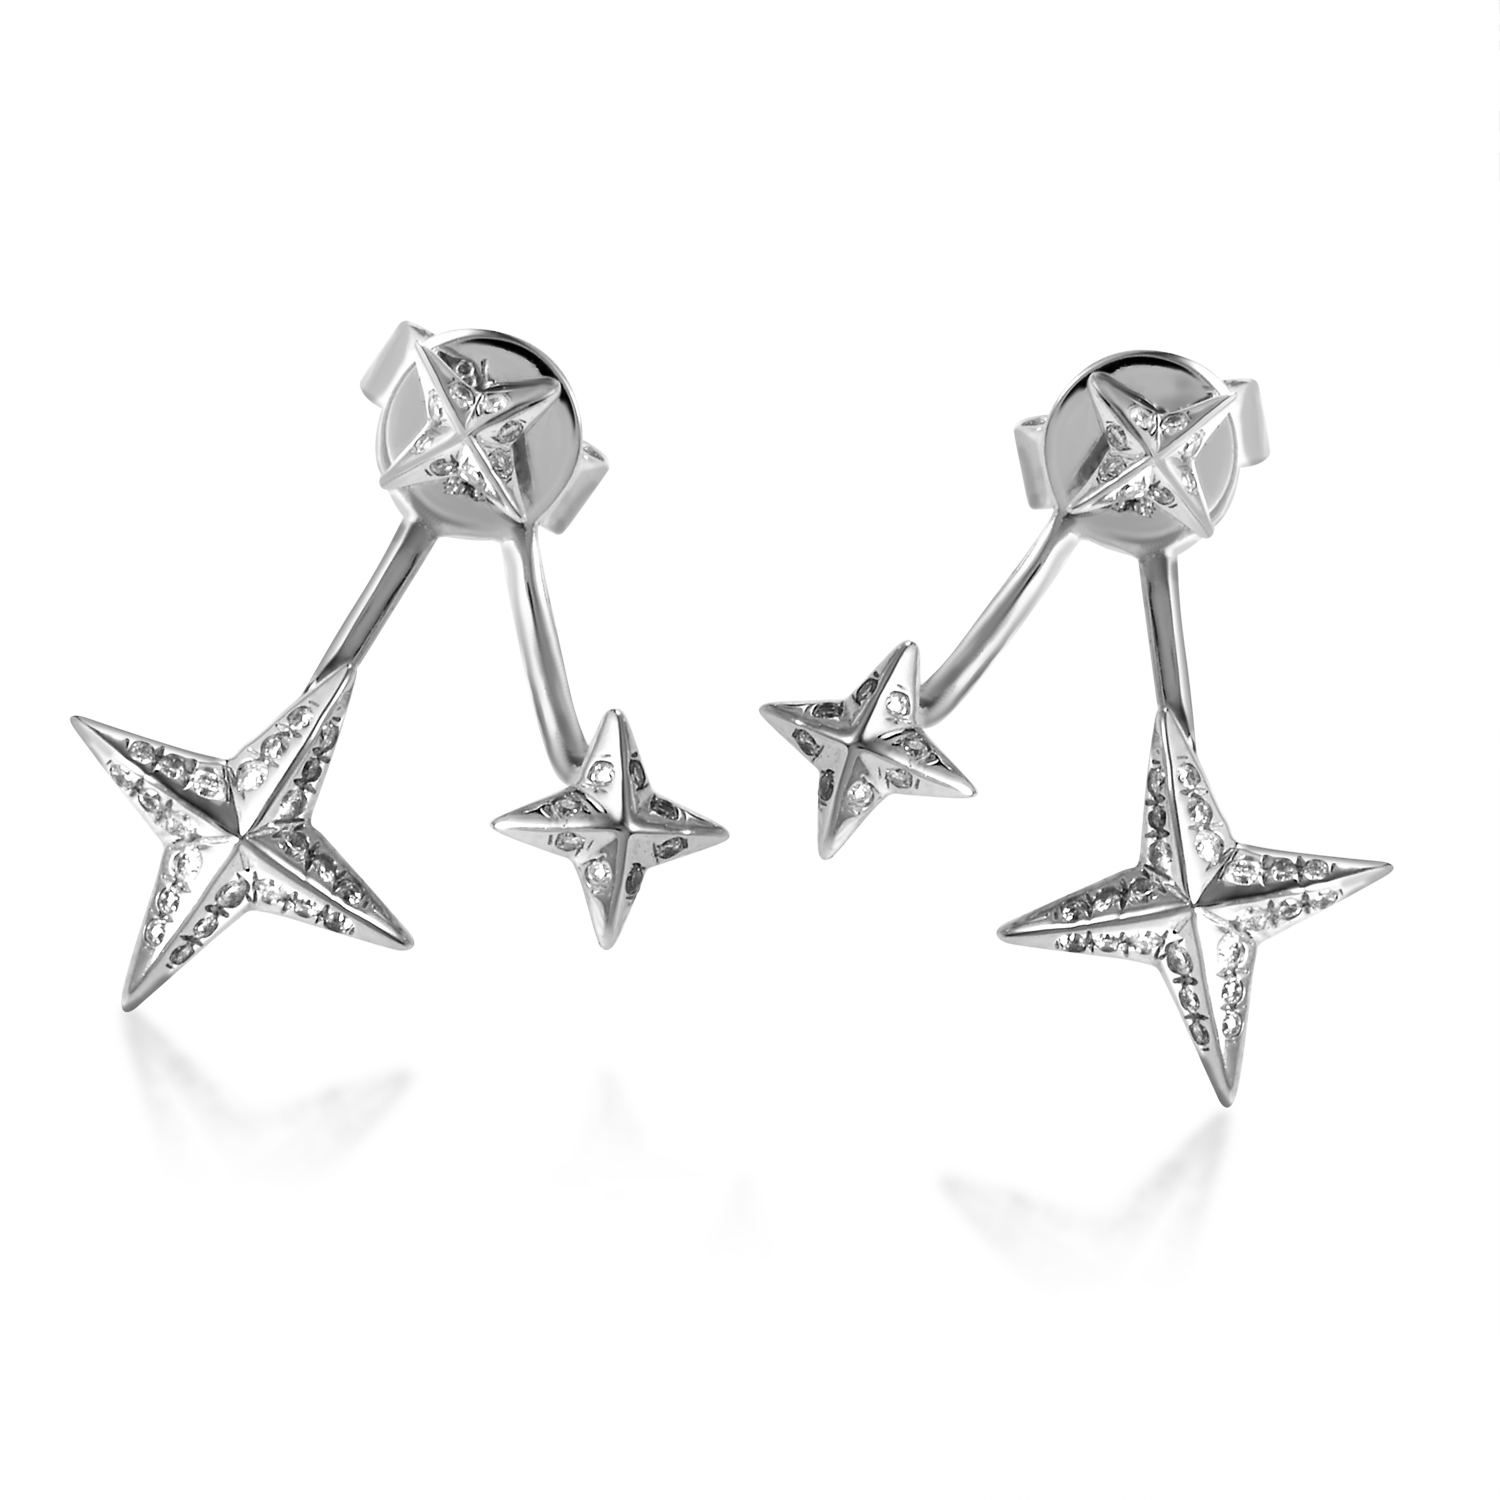 18K White Gold Double Star Diamond Earrings SE02881EFBZ